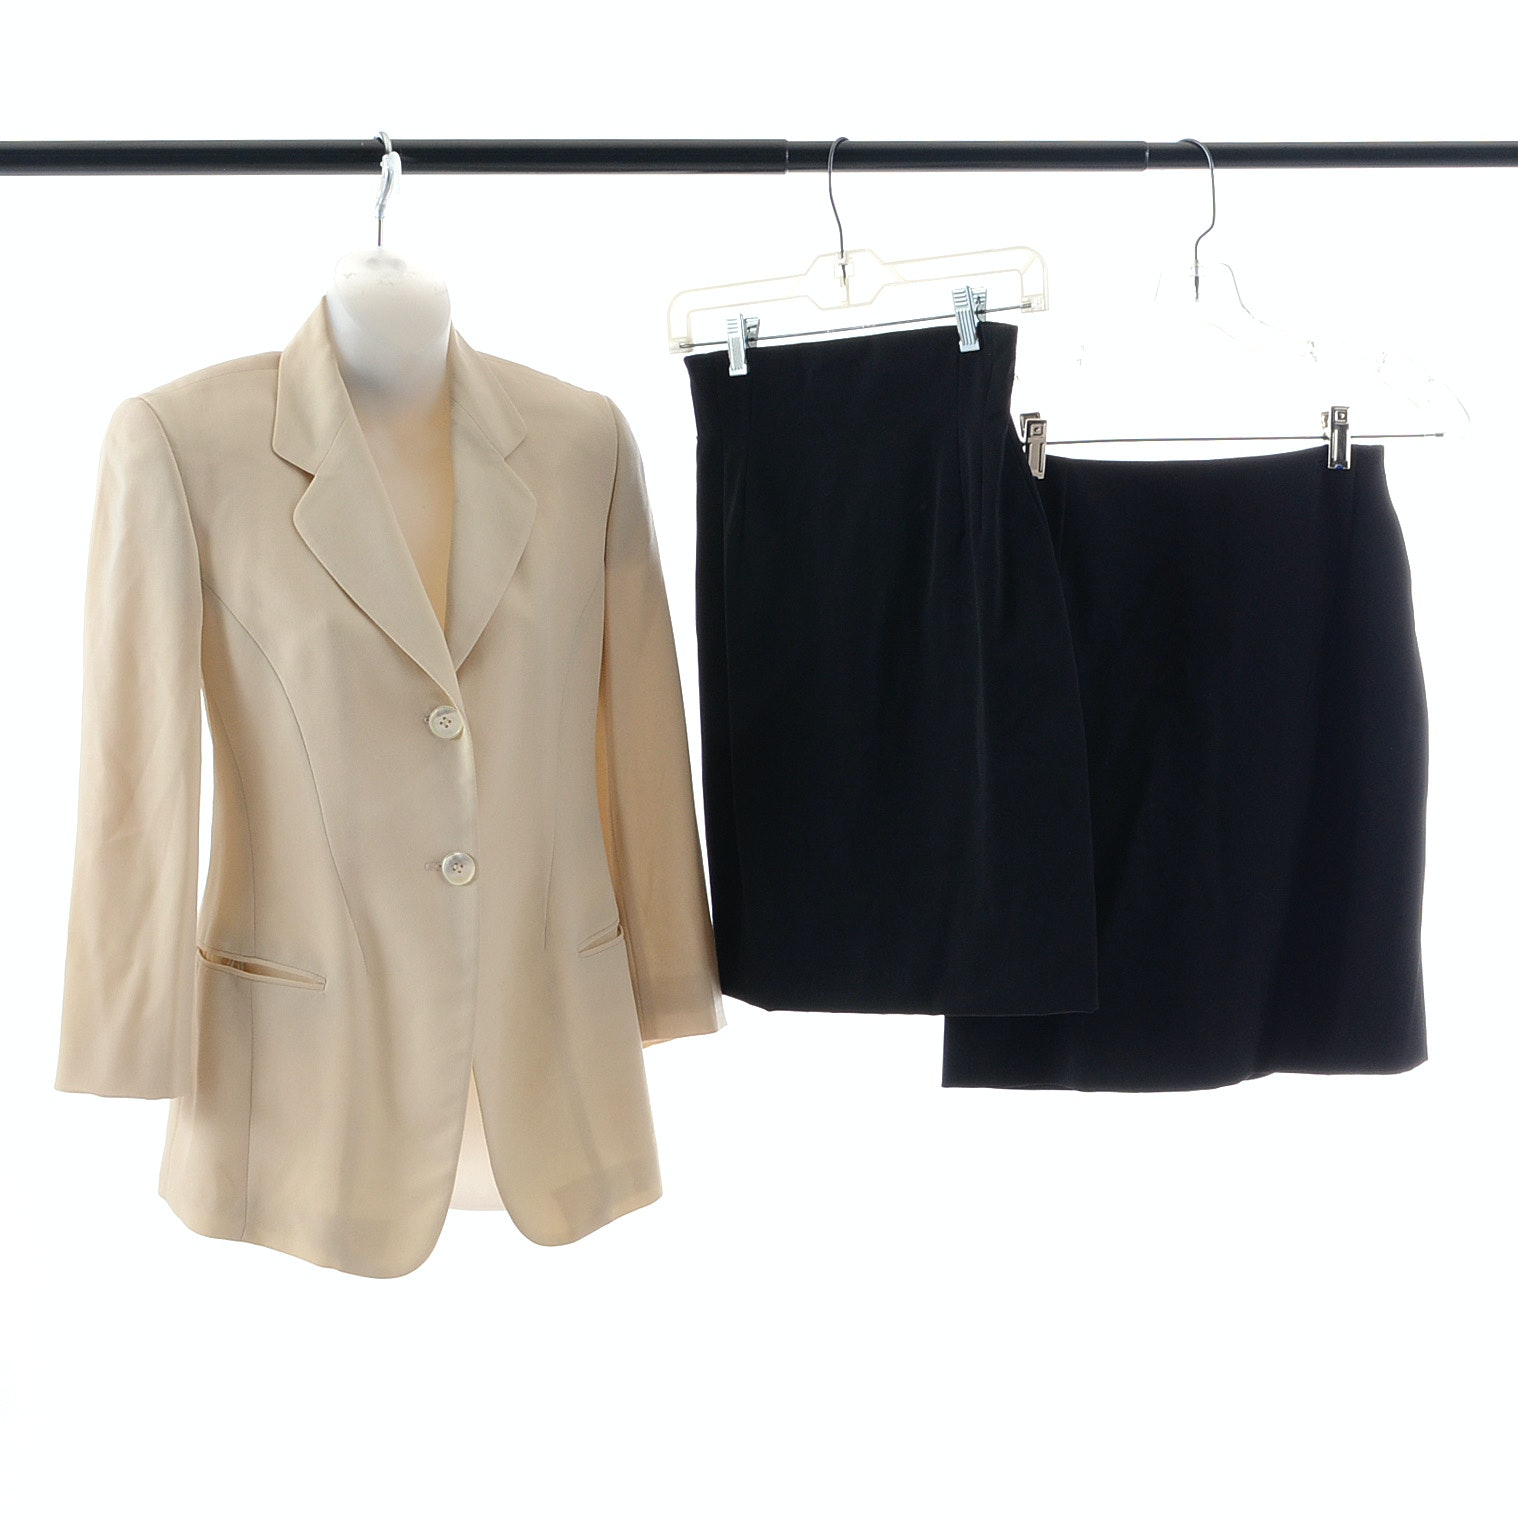 Donna Karan Blazer and Two Black Skirts